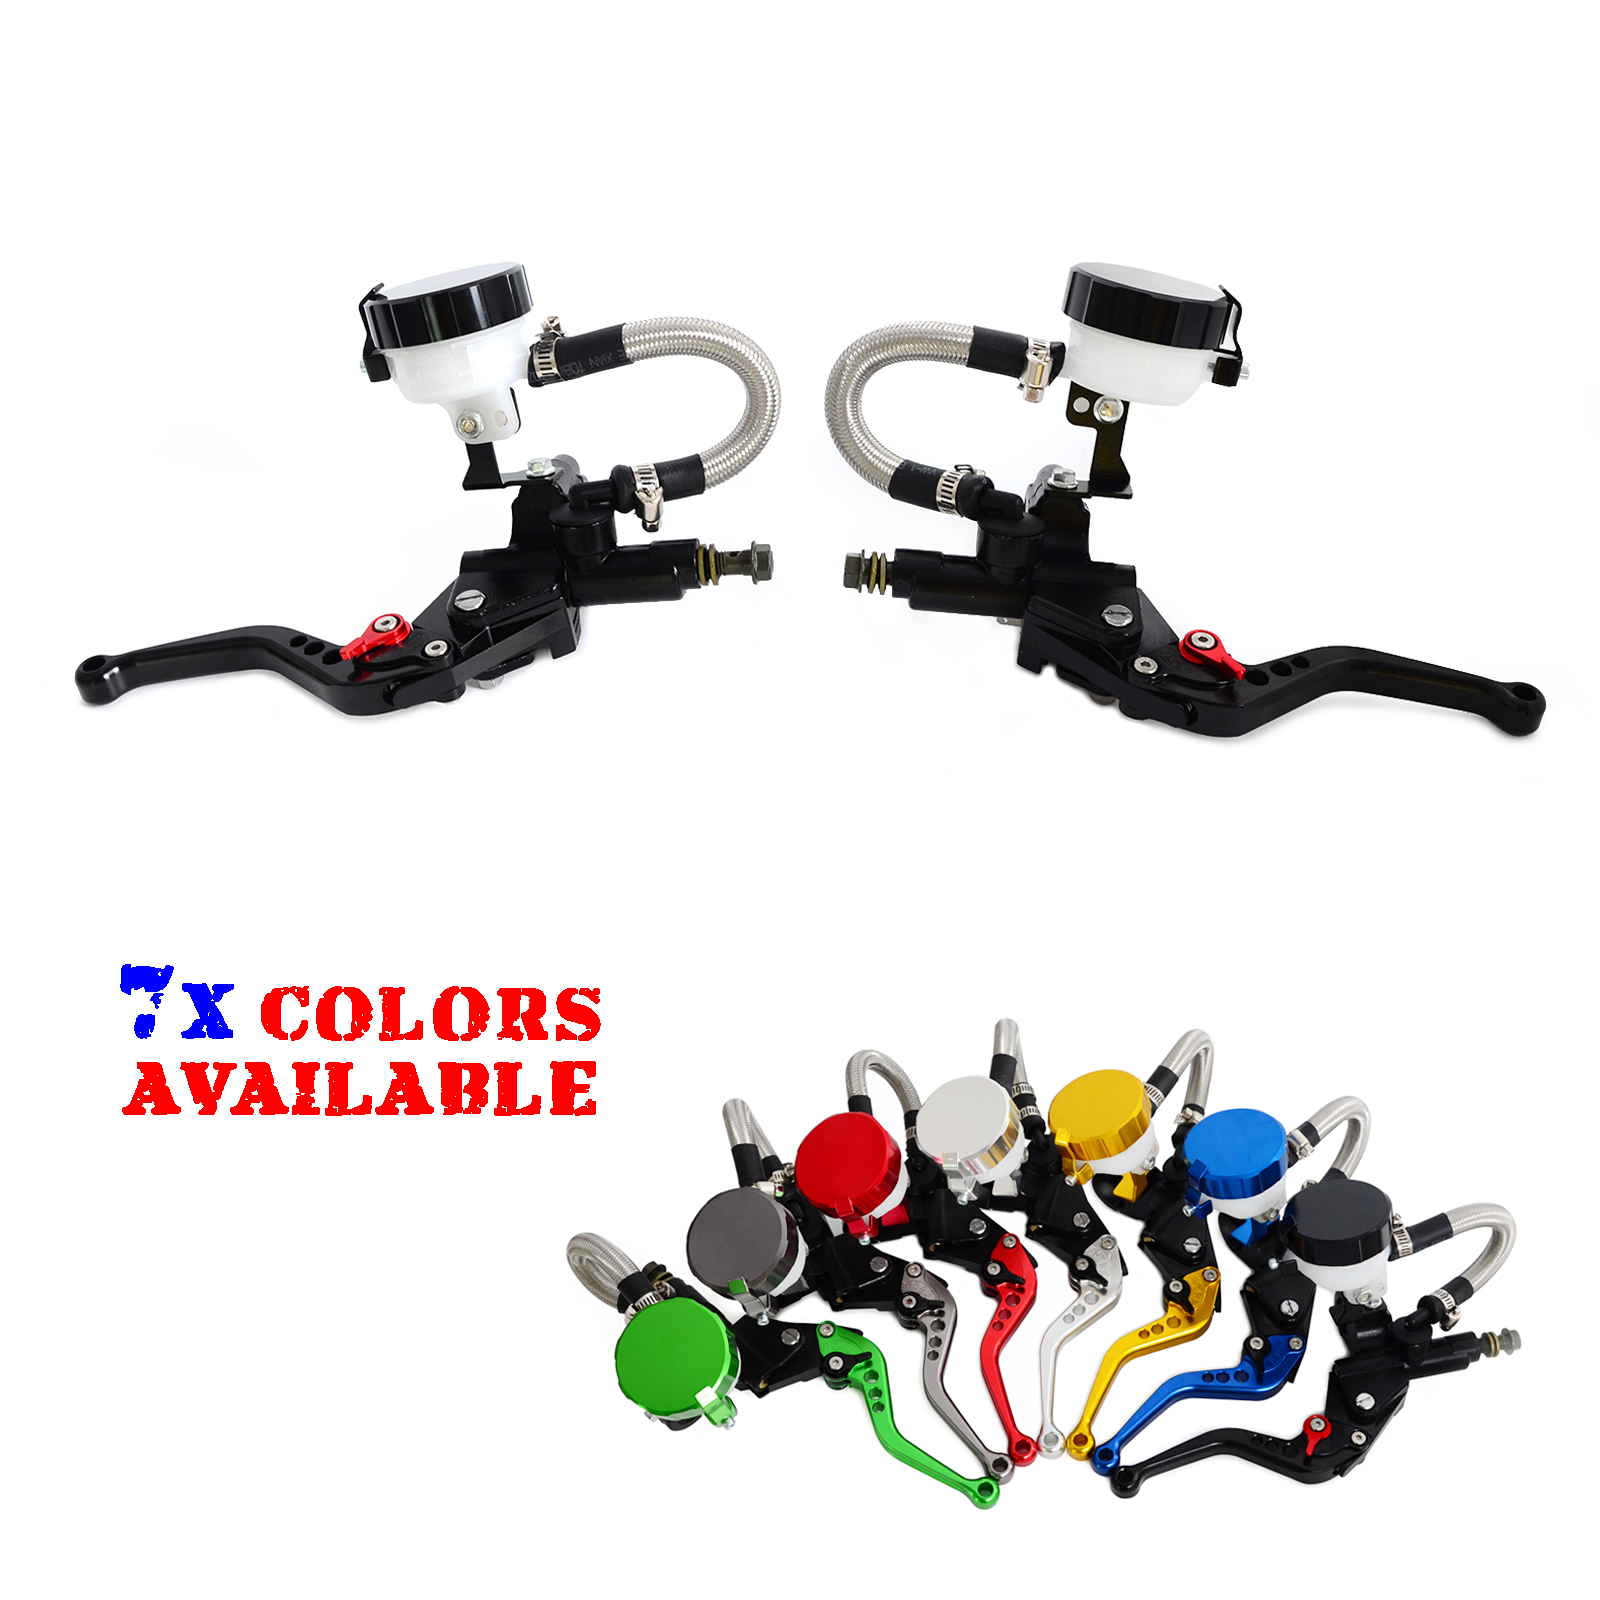 NICECNC Universal Motorcycle 7/8Clutch Brake Levers Master Cylinder Oil Fluid Reservoir Motocross Enduro Supermoto Dirt Bike